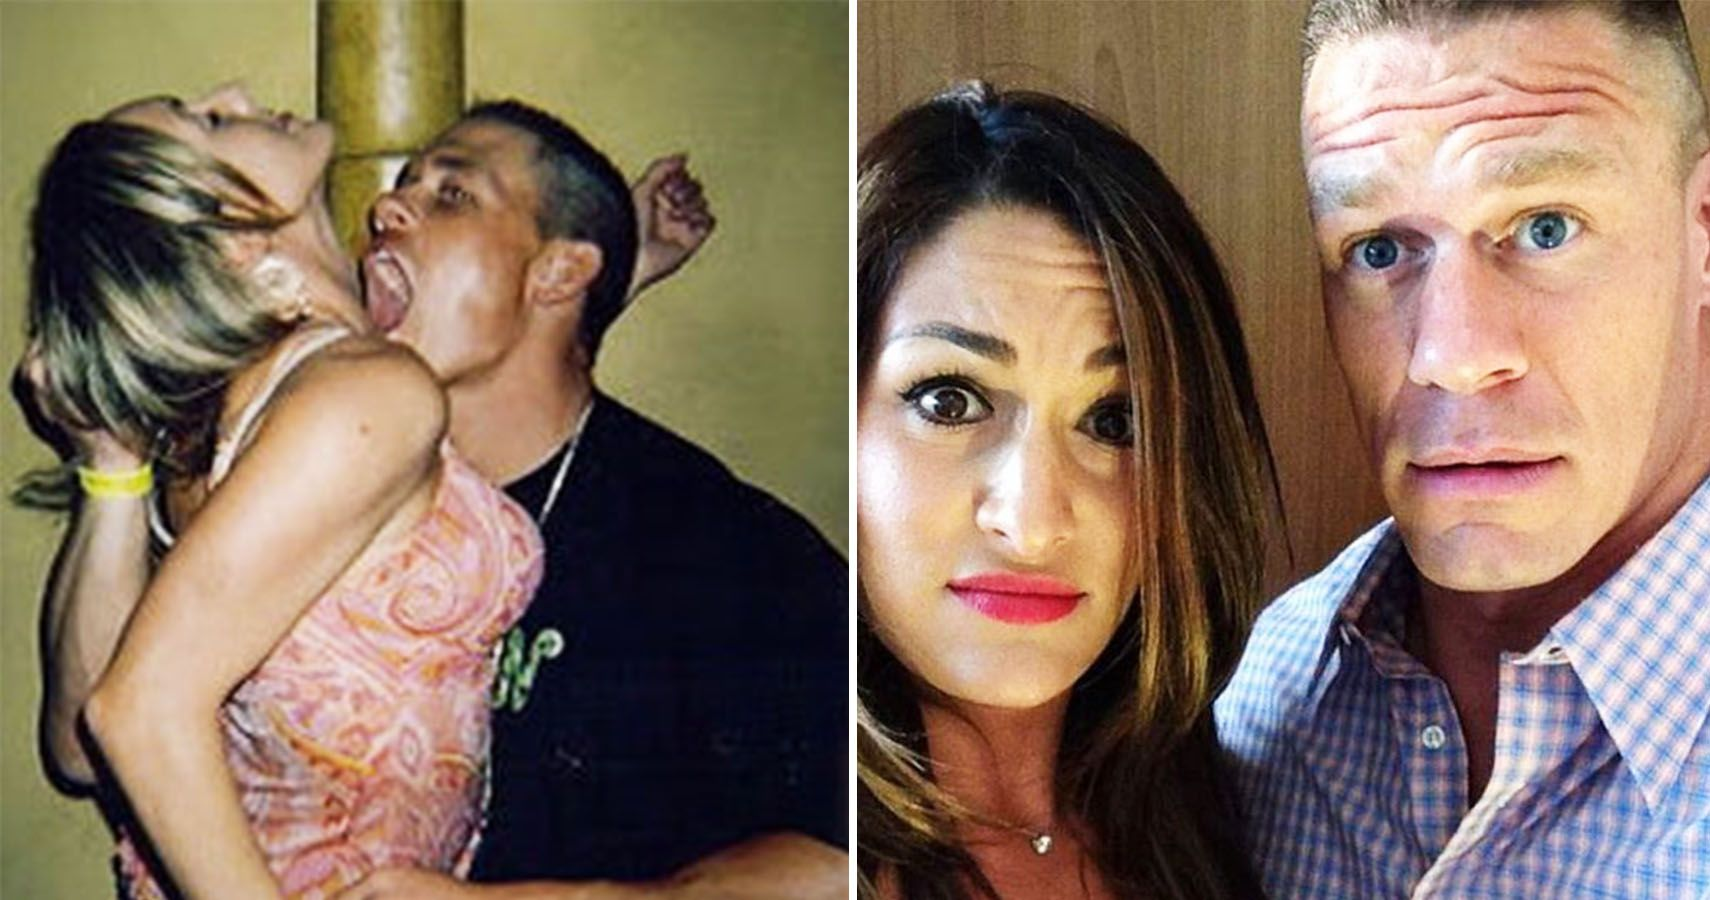 8 Pictures John Cena And Nikki Bella Want You To See And 7 They DON\'T